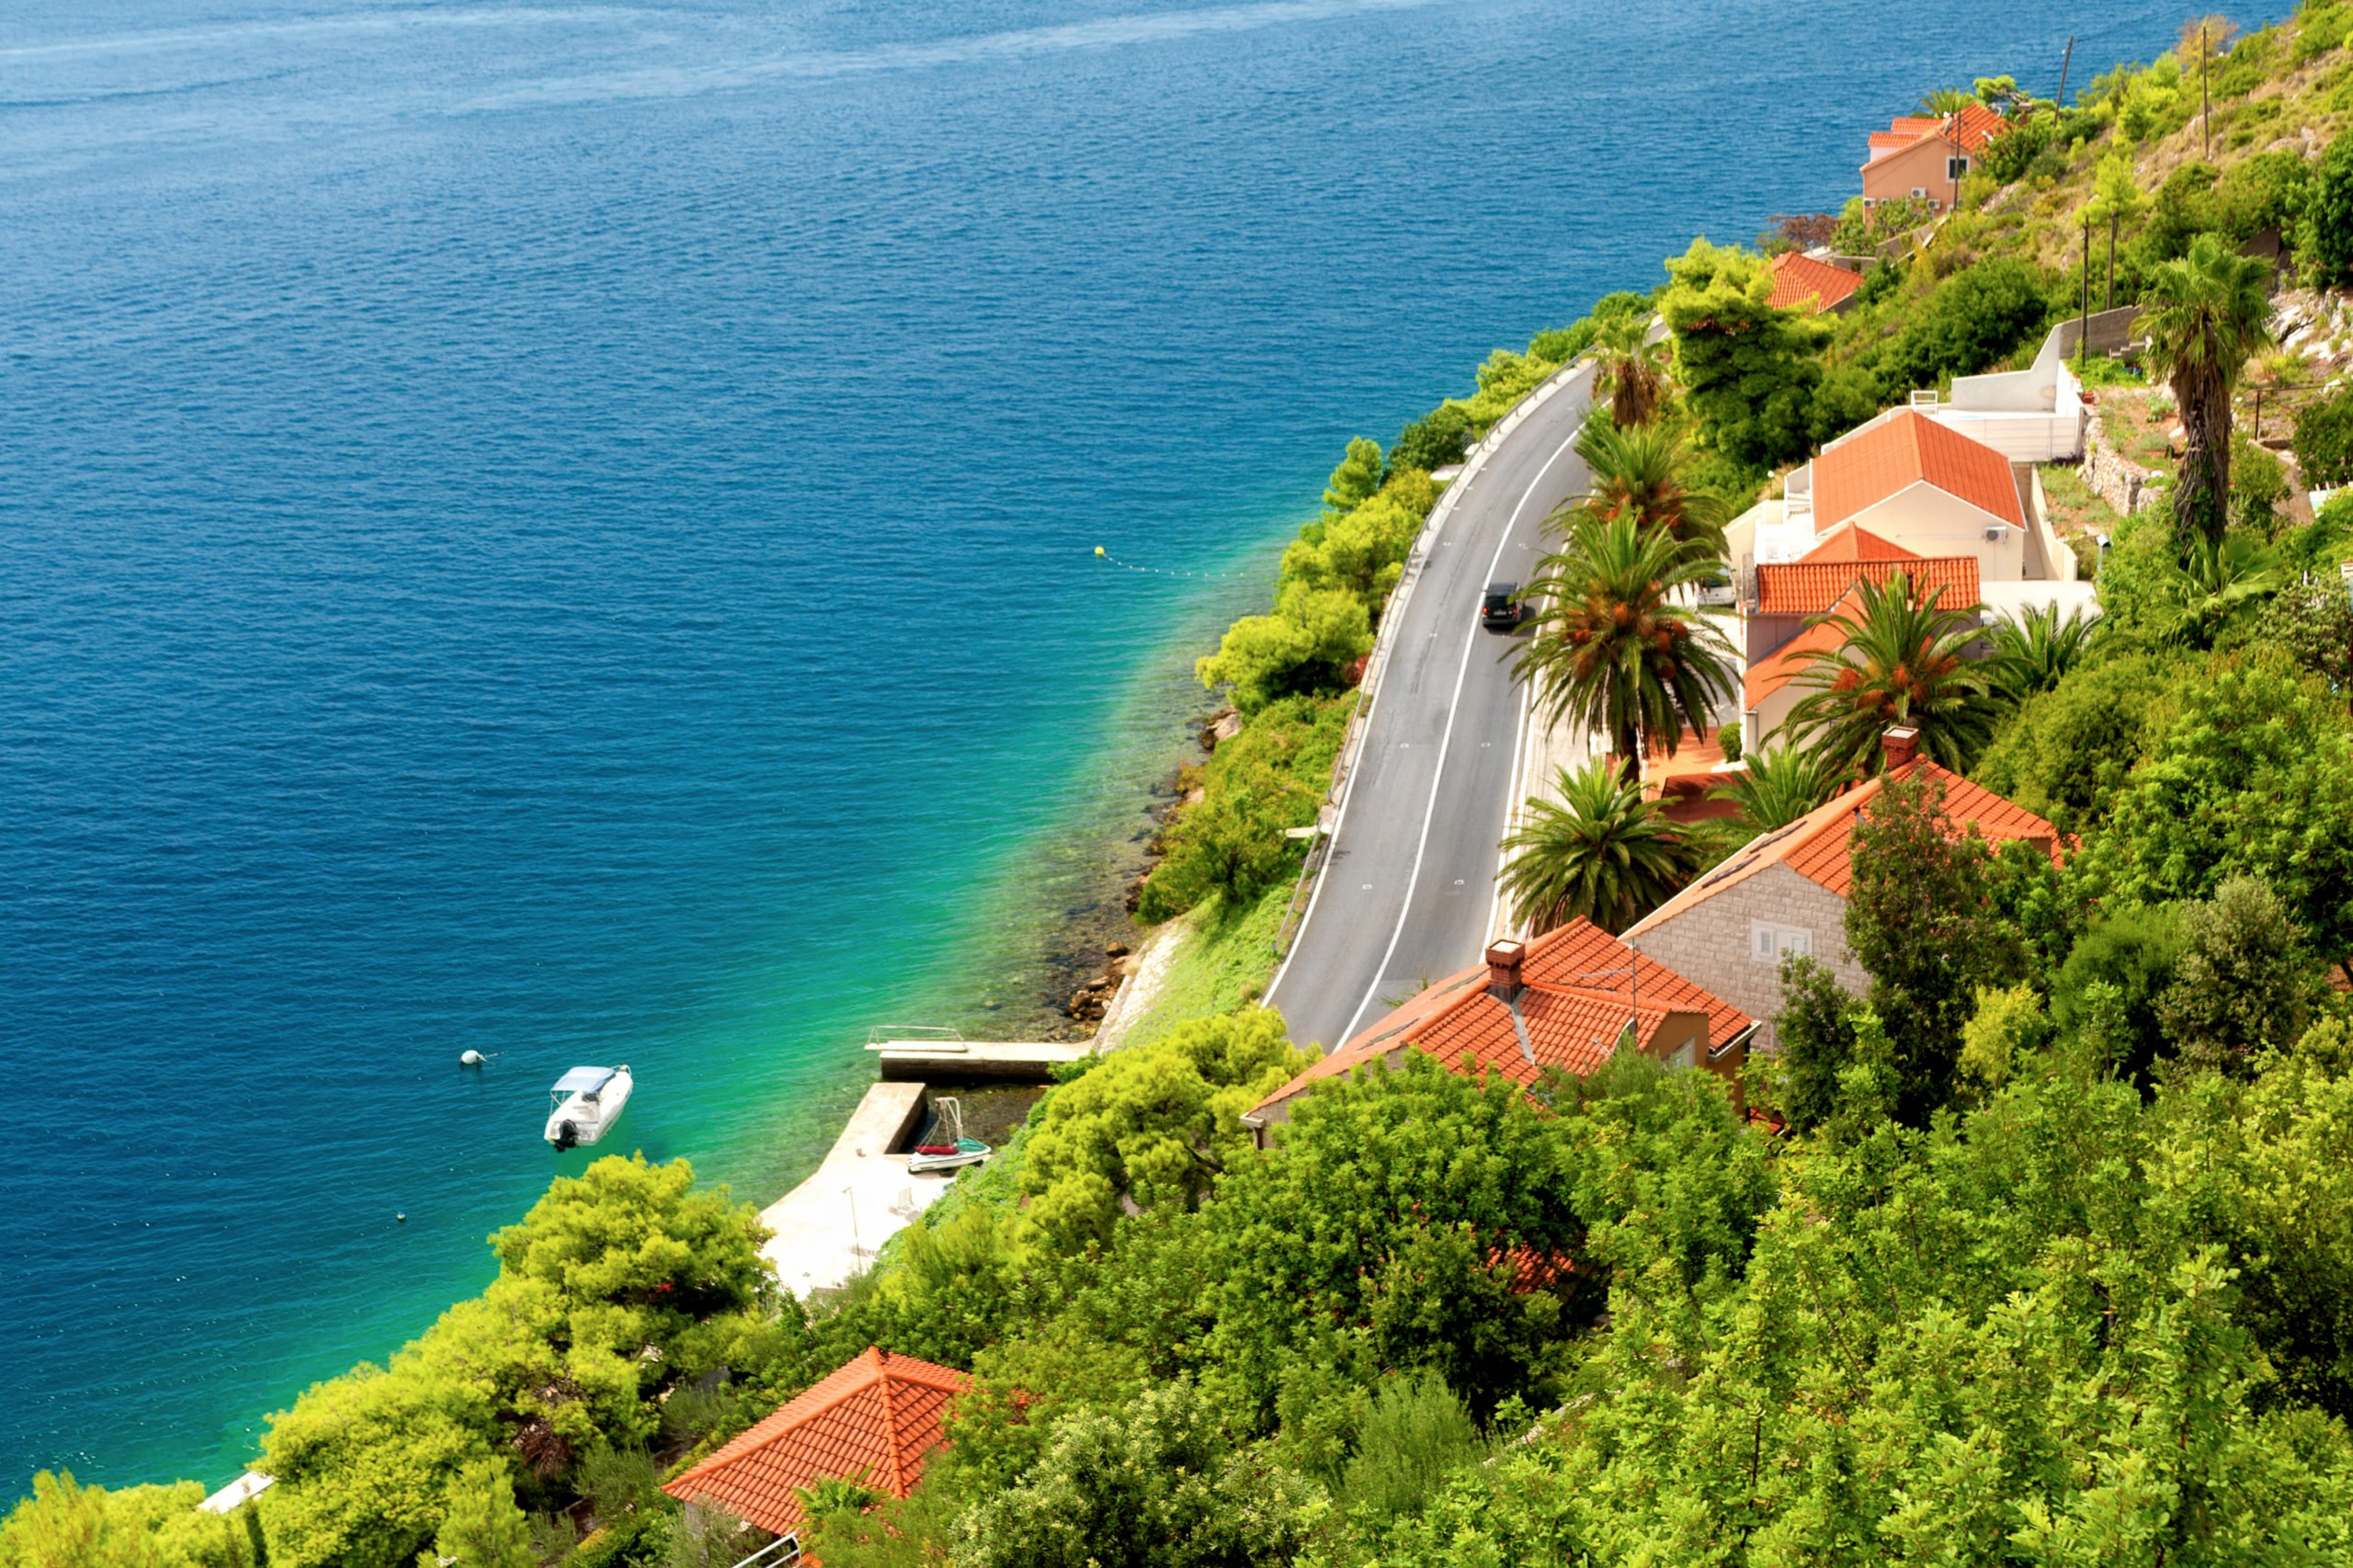 Enjoy The Views Of The Dubrovnik Riviera On The Bike Trip At The Dubrovnik Riviera